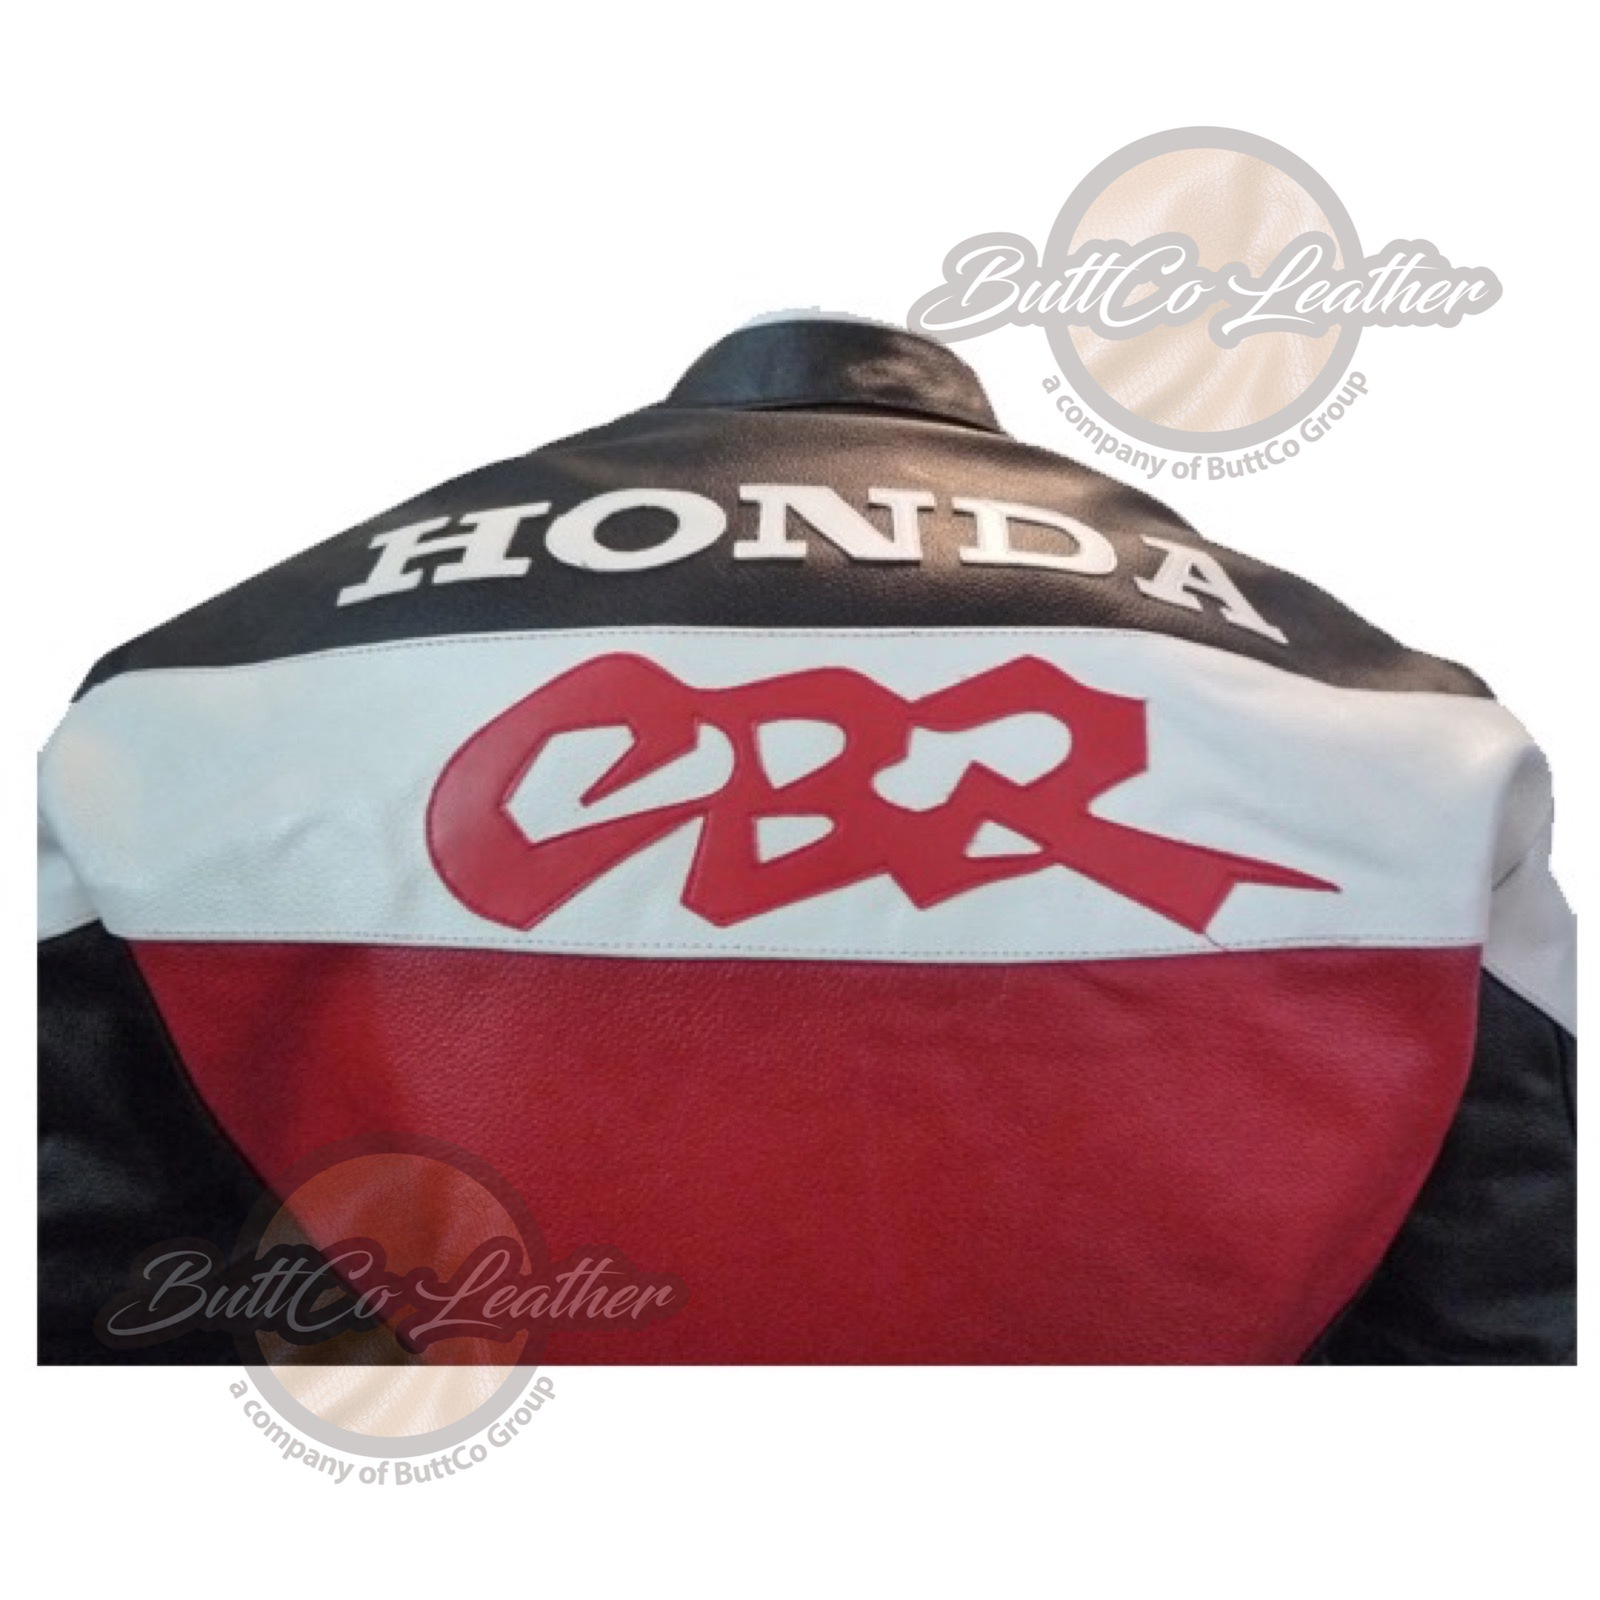 Honda CBR Motorcycle Racing Gear 3